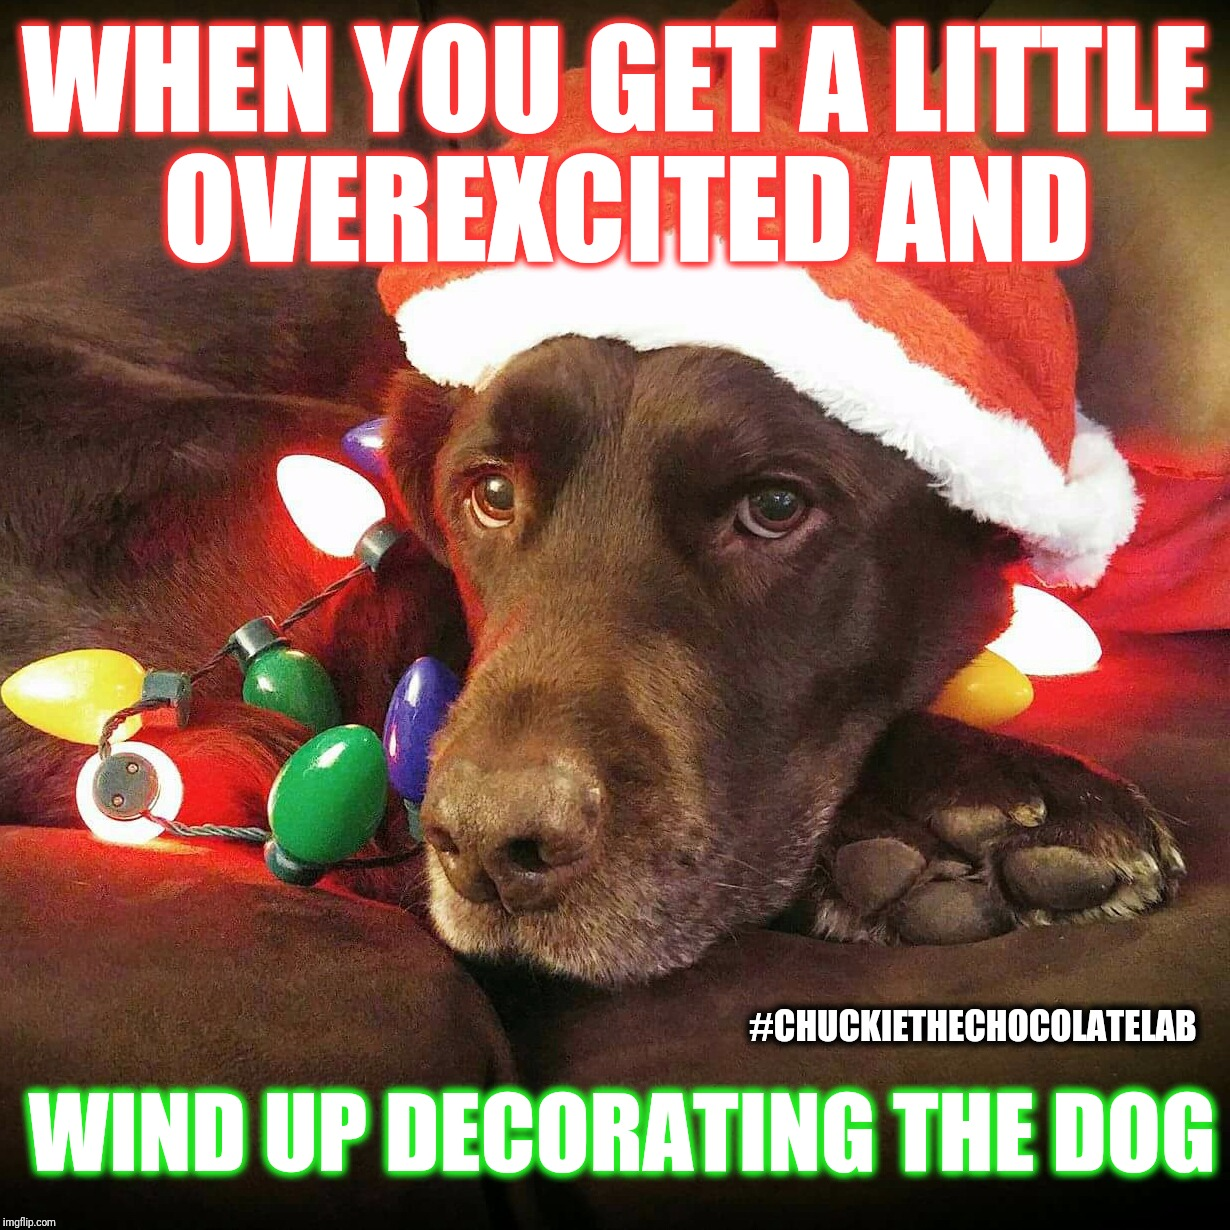 Decorating the dog  | WHEN YOU GET A LITTLE OVEREXCITED AND WIND UP DECORATING THE DOG #CHUCKIETHECHOCOLATELAB | image tagged in chuckie the chocolate lab teamchuckie,dogs,funny,christmas,holidays,christmas lights | made w/ Imgflip meme maker